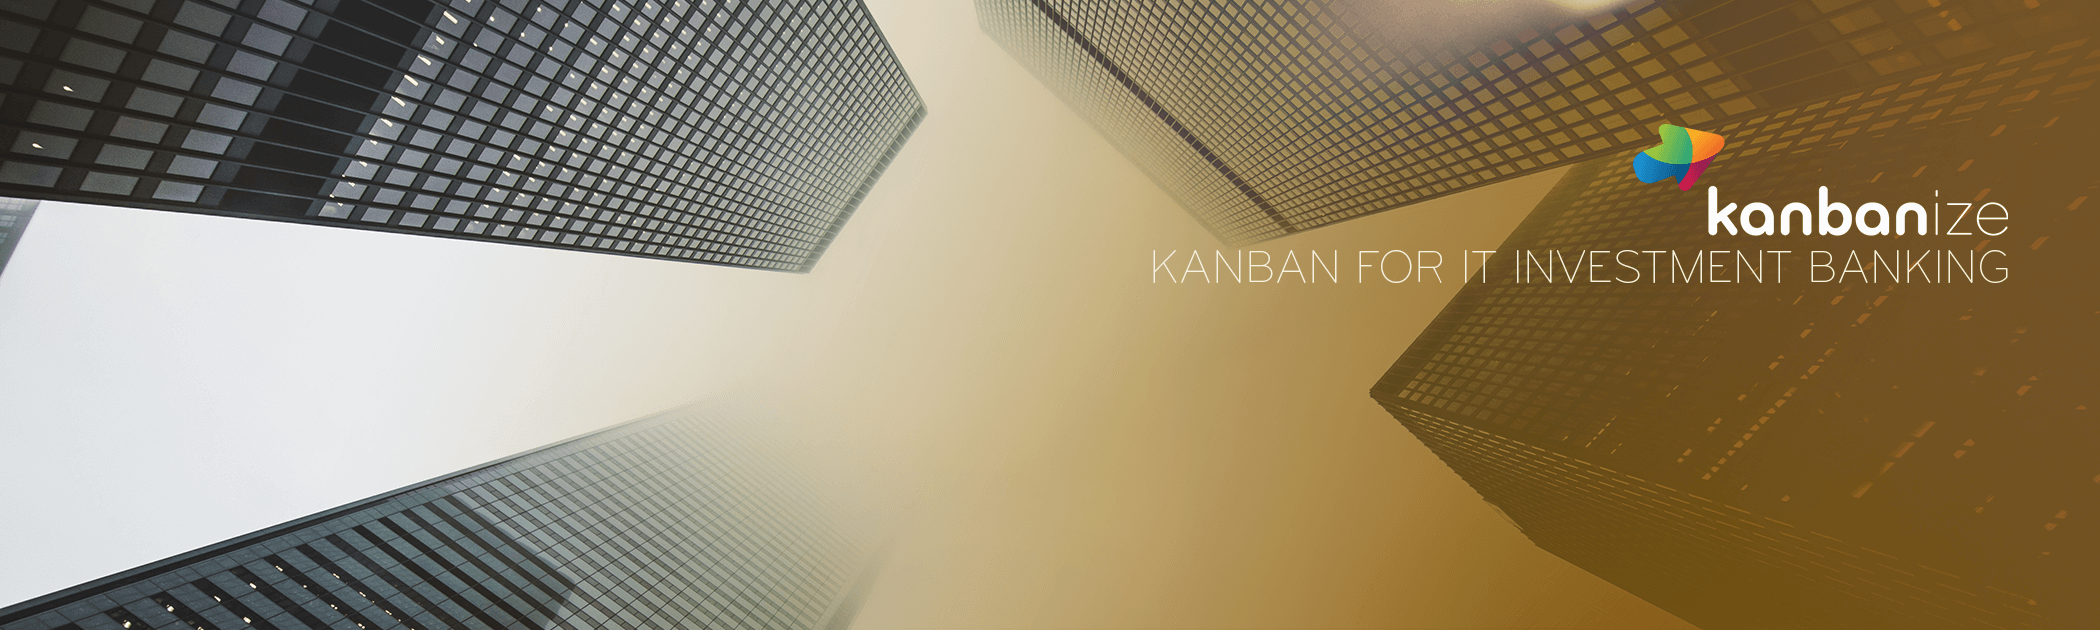 Kanban for IT investment banking